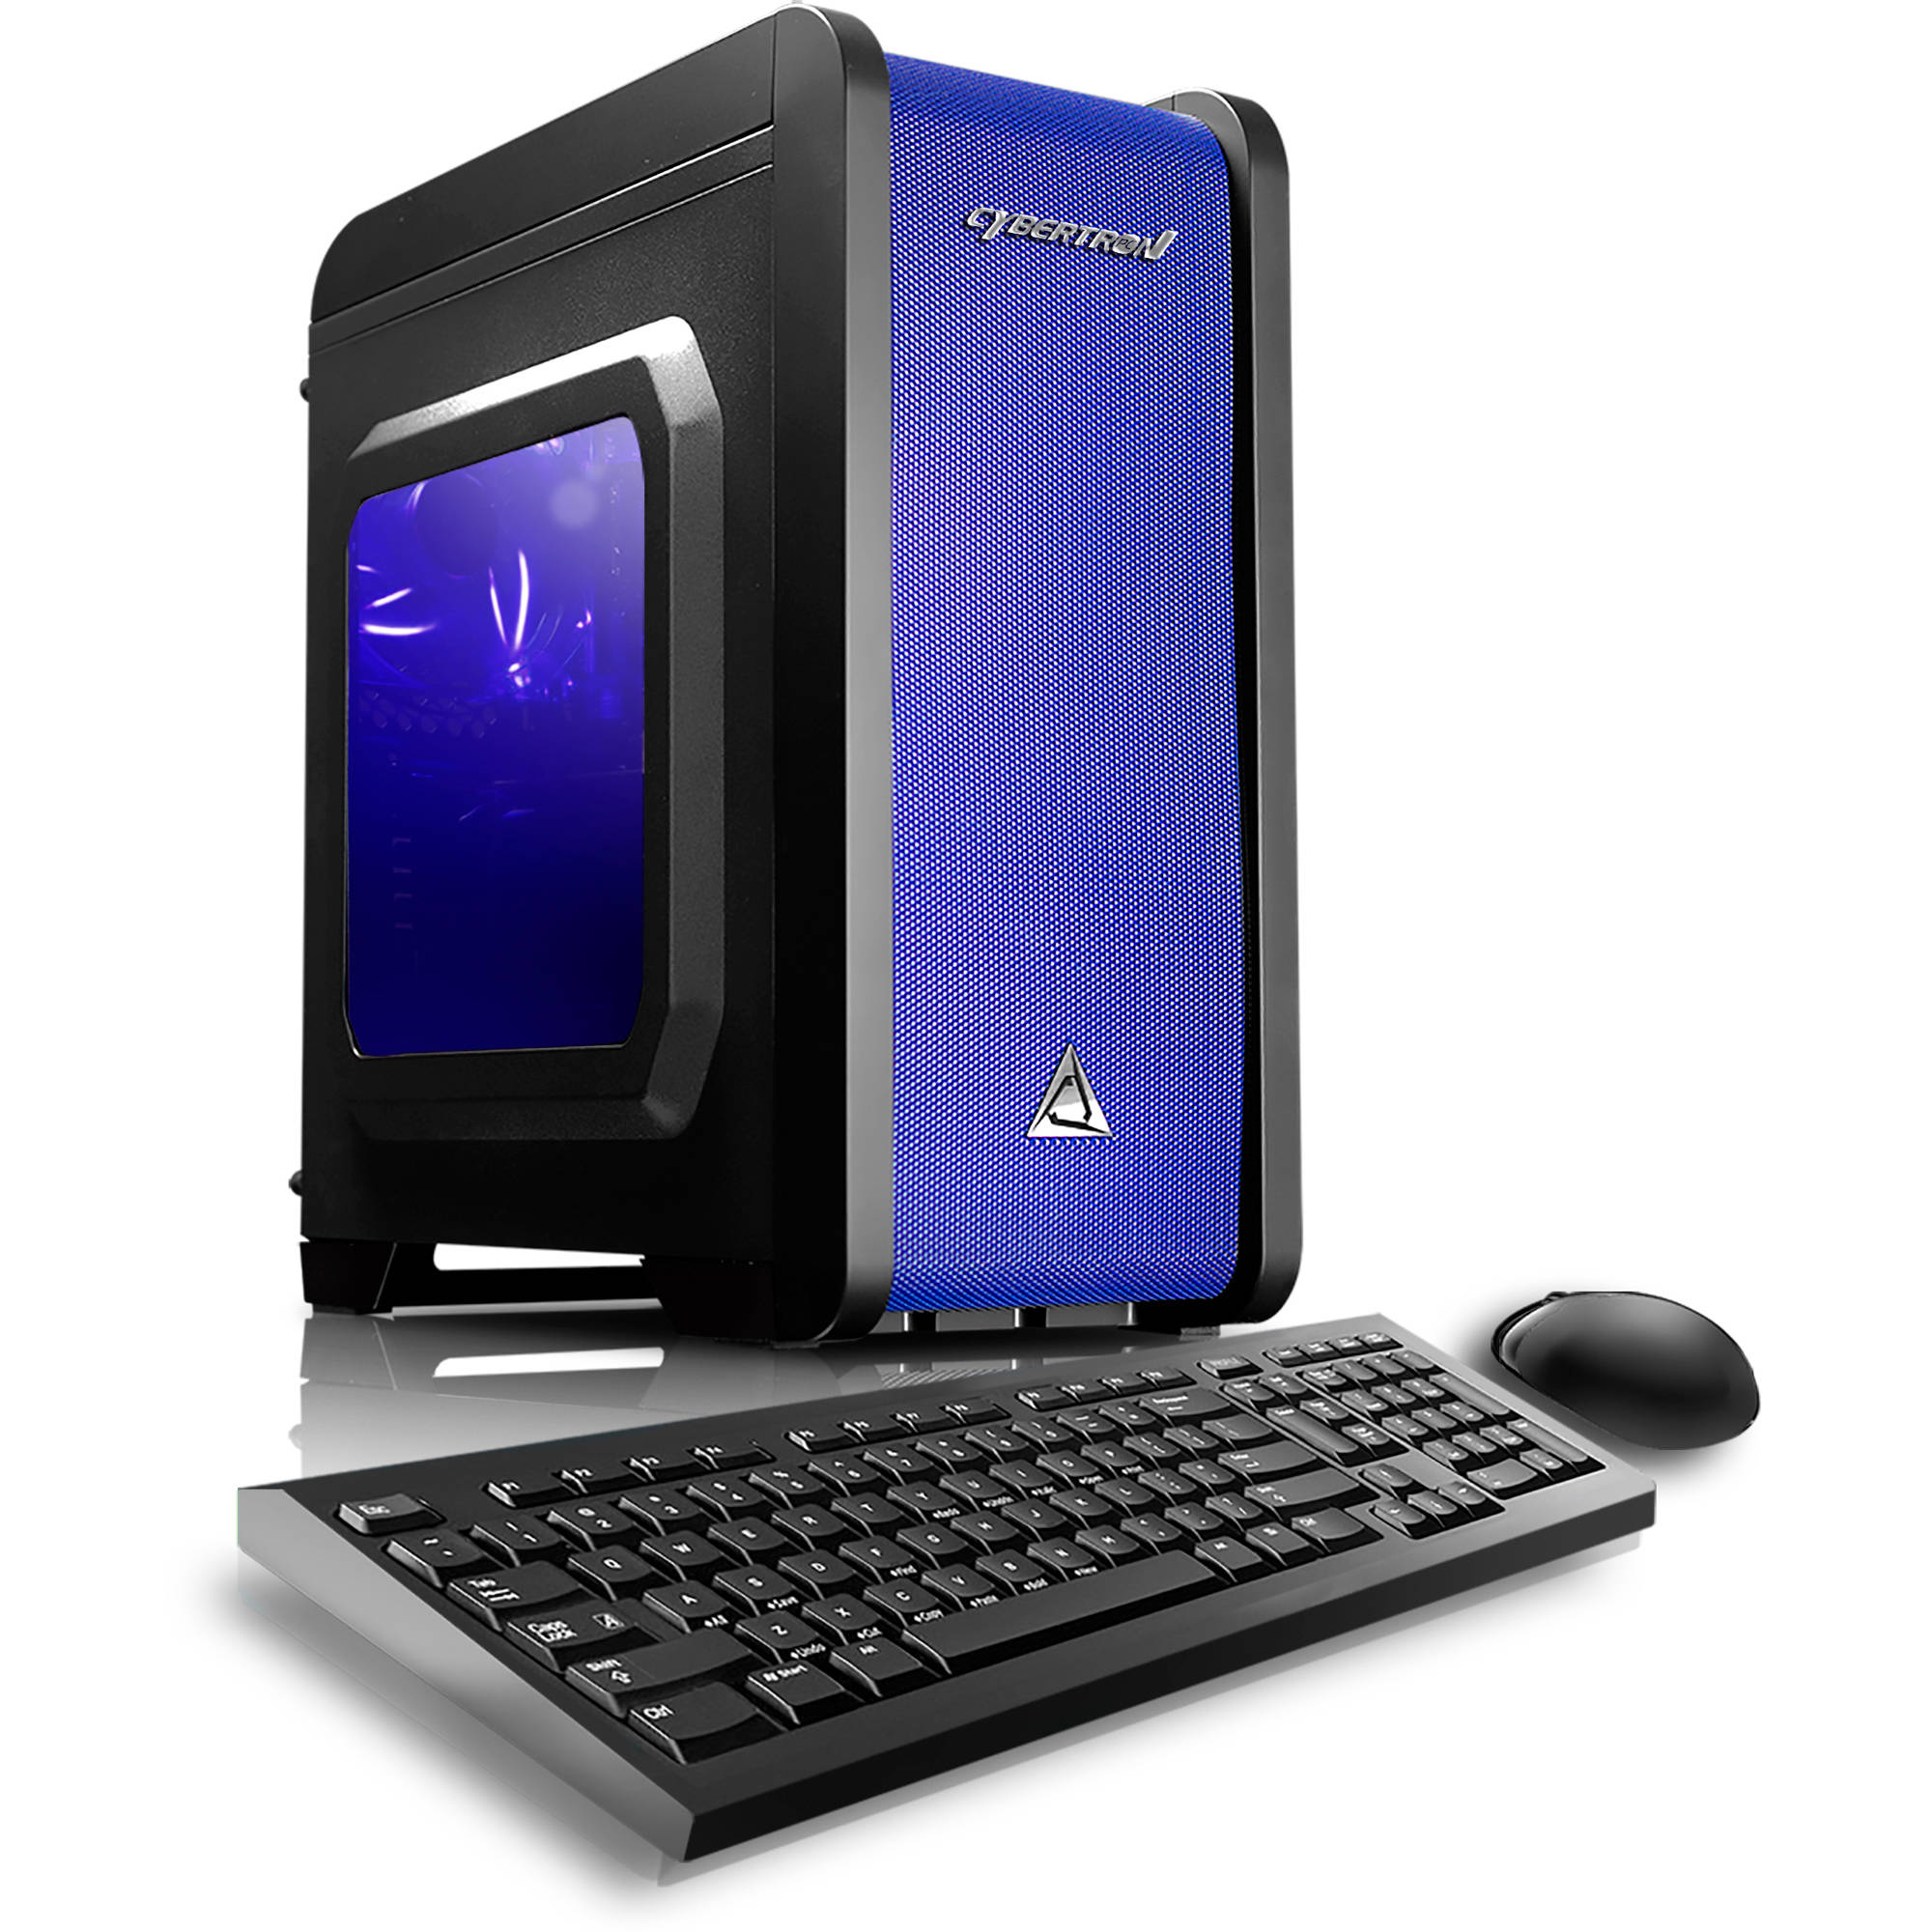 CybertronPC Blue Electrum RX - 470M Gaming Desktop PC with AMD FX - 6350 Processor, 8GB Memory, 1TB Hard Drive and Windows 10 Home (Monitor Not Included)